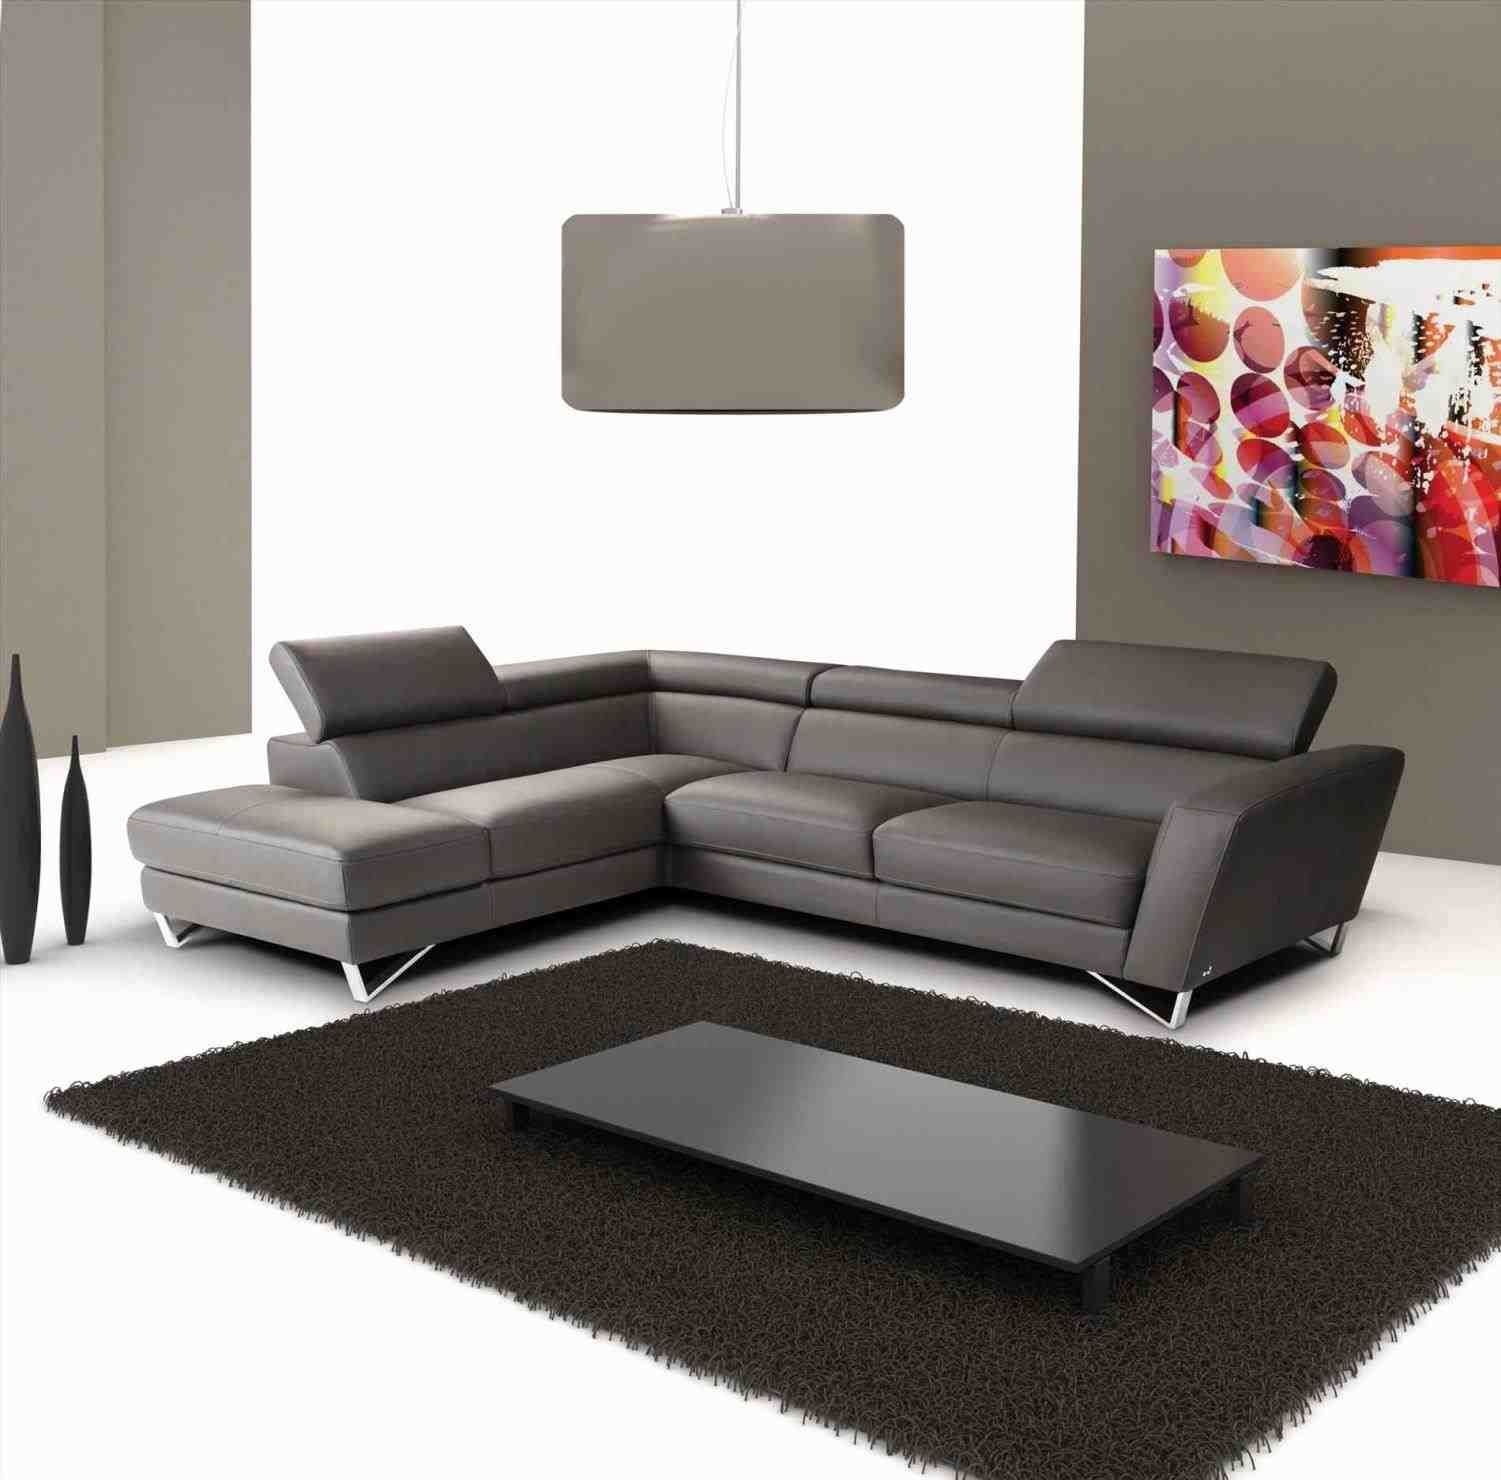 Cheap Sectionals Montreal Full Size Of Furniture Sofa Sectional Near Me Sofa Modern Sofa Sectional Contemporary Sectional Sofa Italian Leather Sectional Sofa